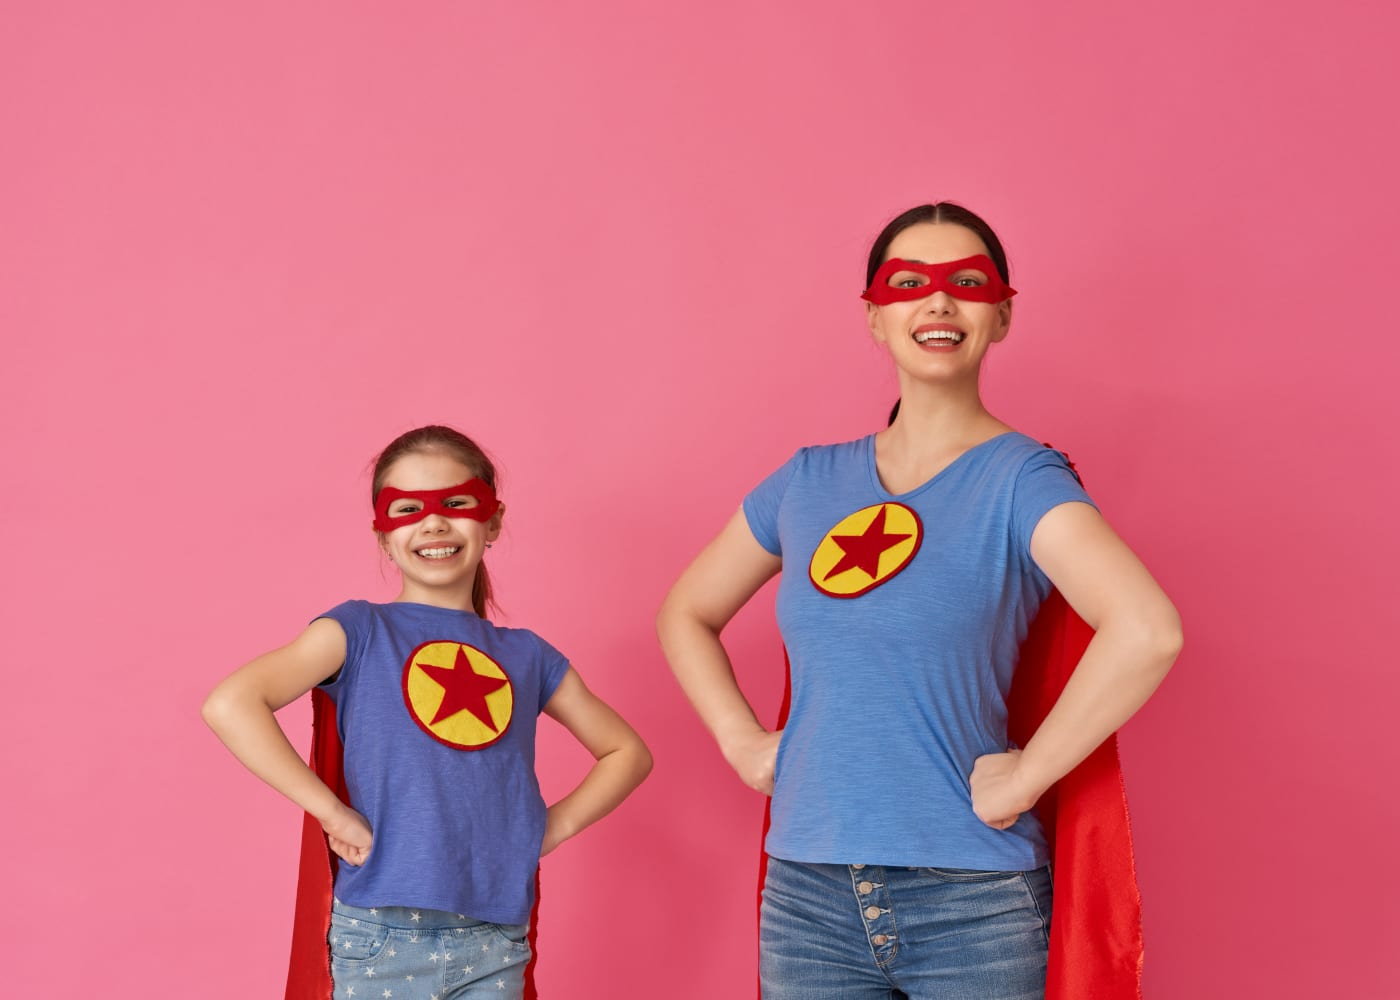 Move over, Spidey! All hail the supermum and her supermum senses